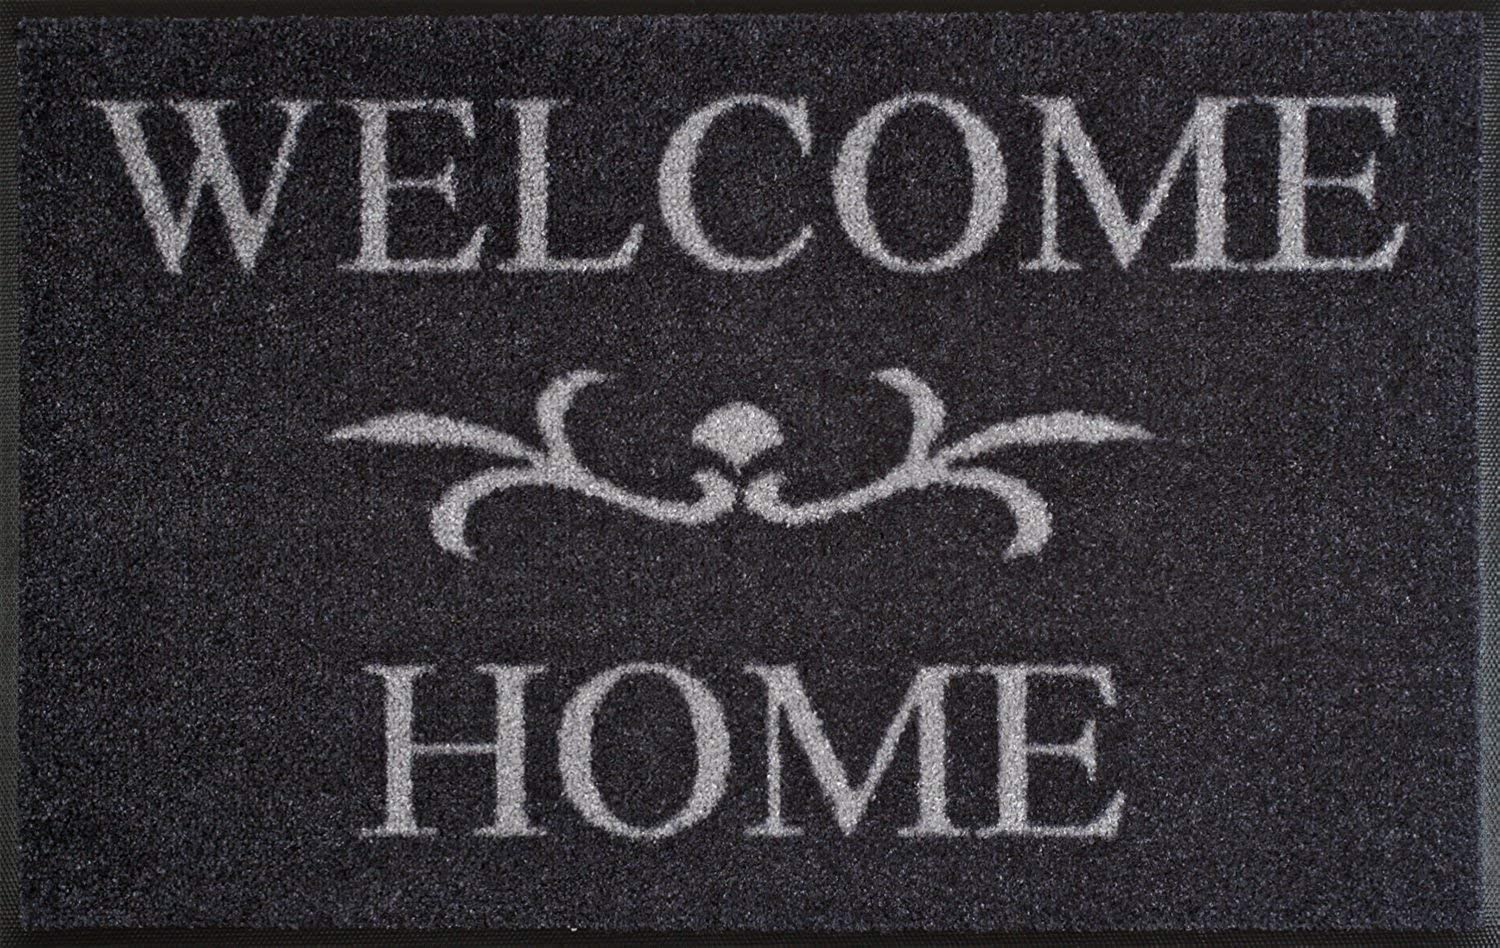 Wash+Dry M38542D 004752 Door Mat 50 x 75 cm with Welcome Home Text Charcoal by wash+dry